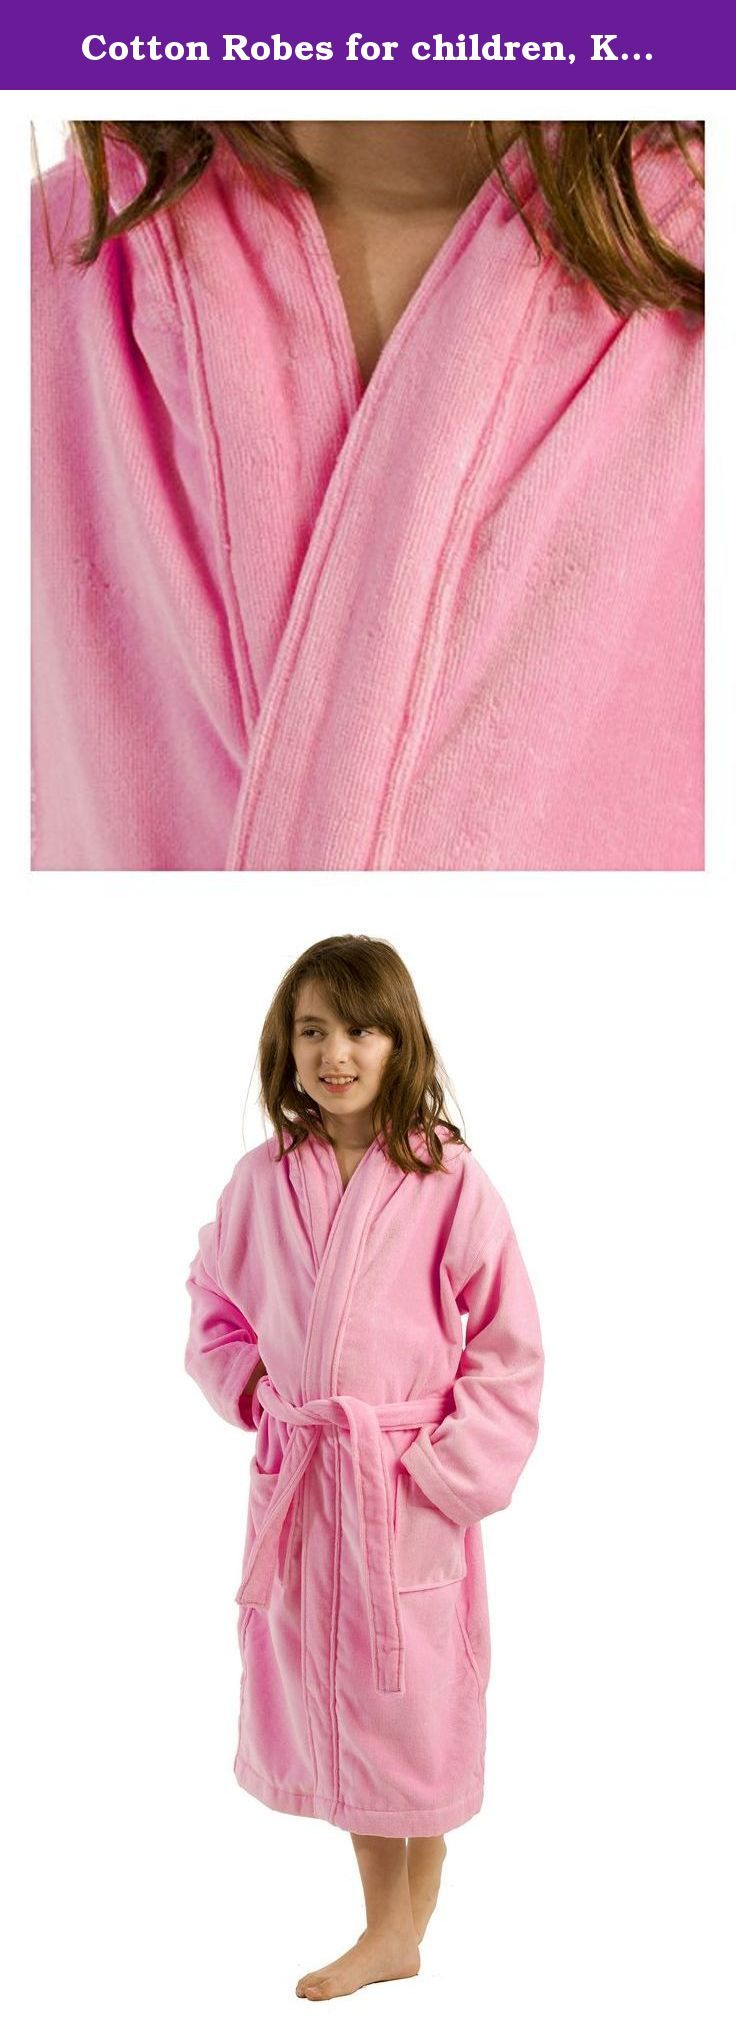 Cotton Robes for children, Kids Cover up shower towels for girls ...